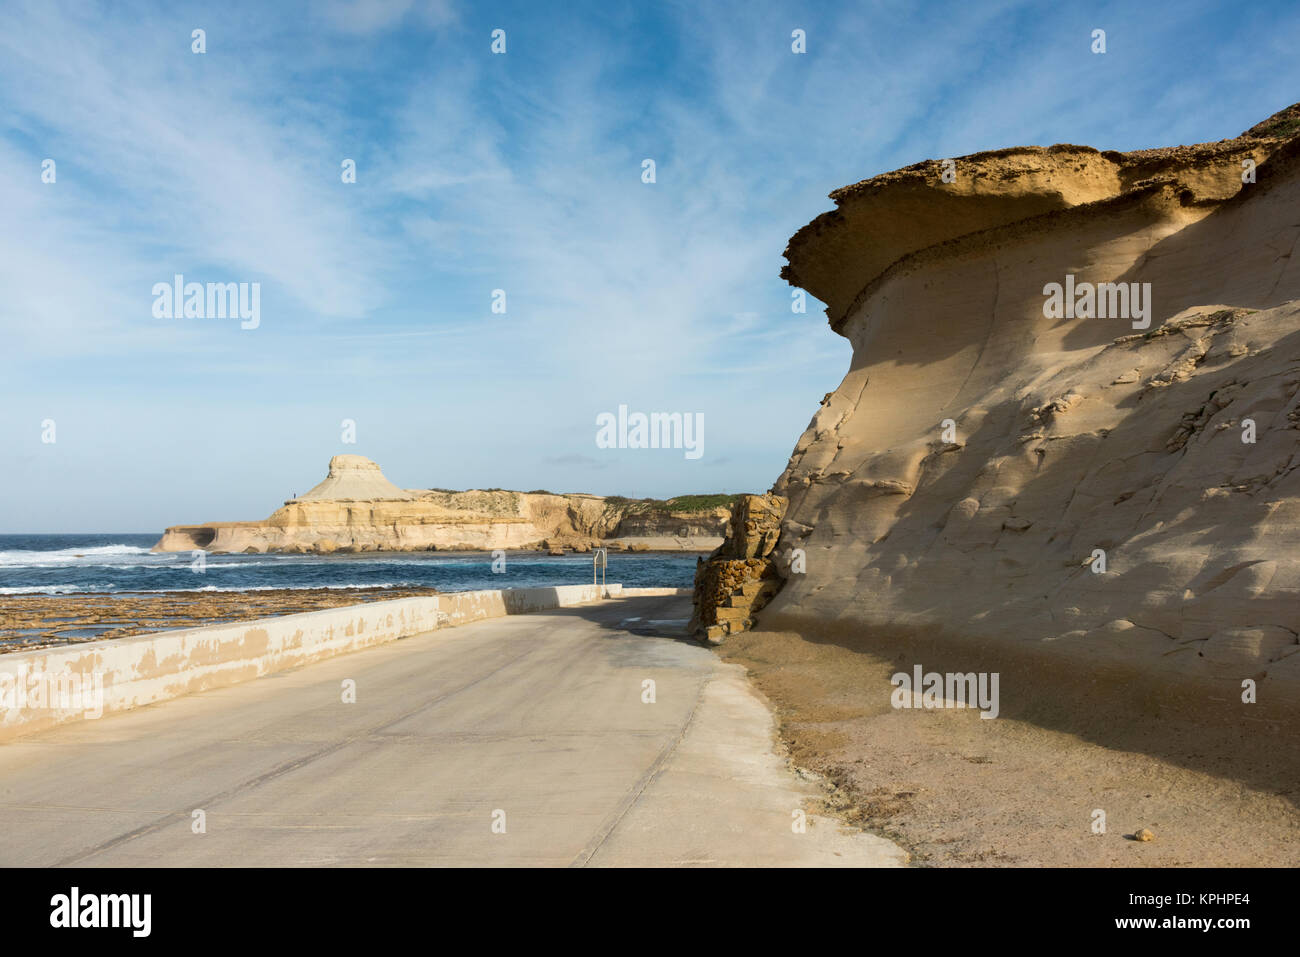 A sand formation made by wind erosion at Qbarjjar Bay Gozo Malta - Stock Image